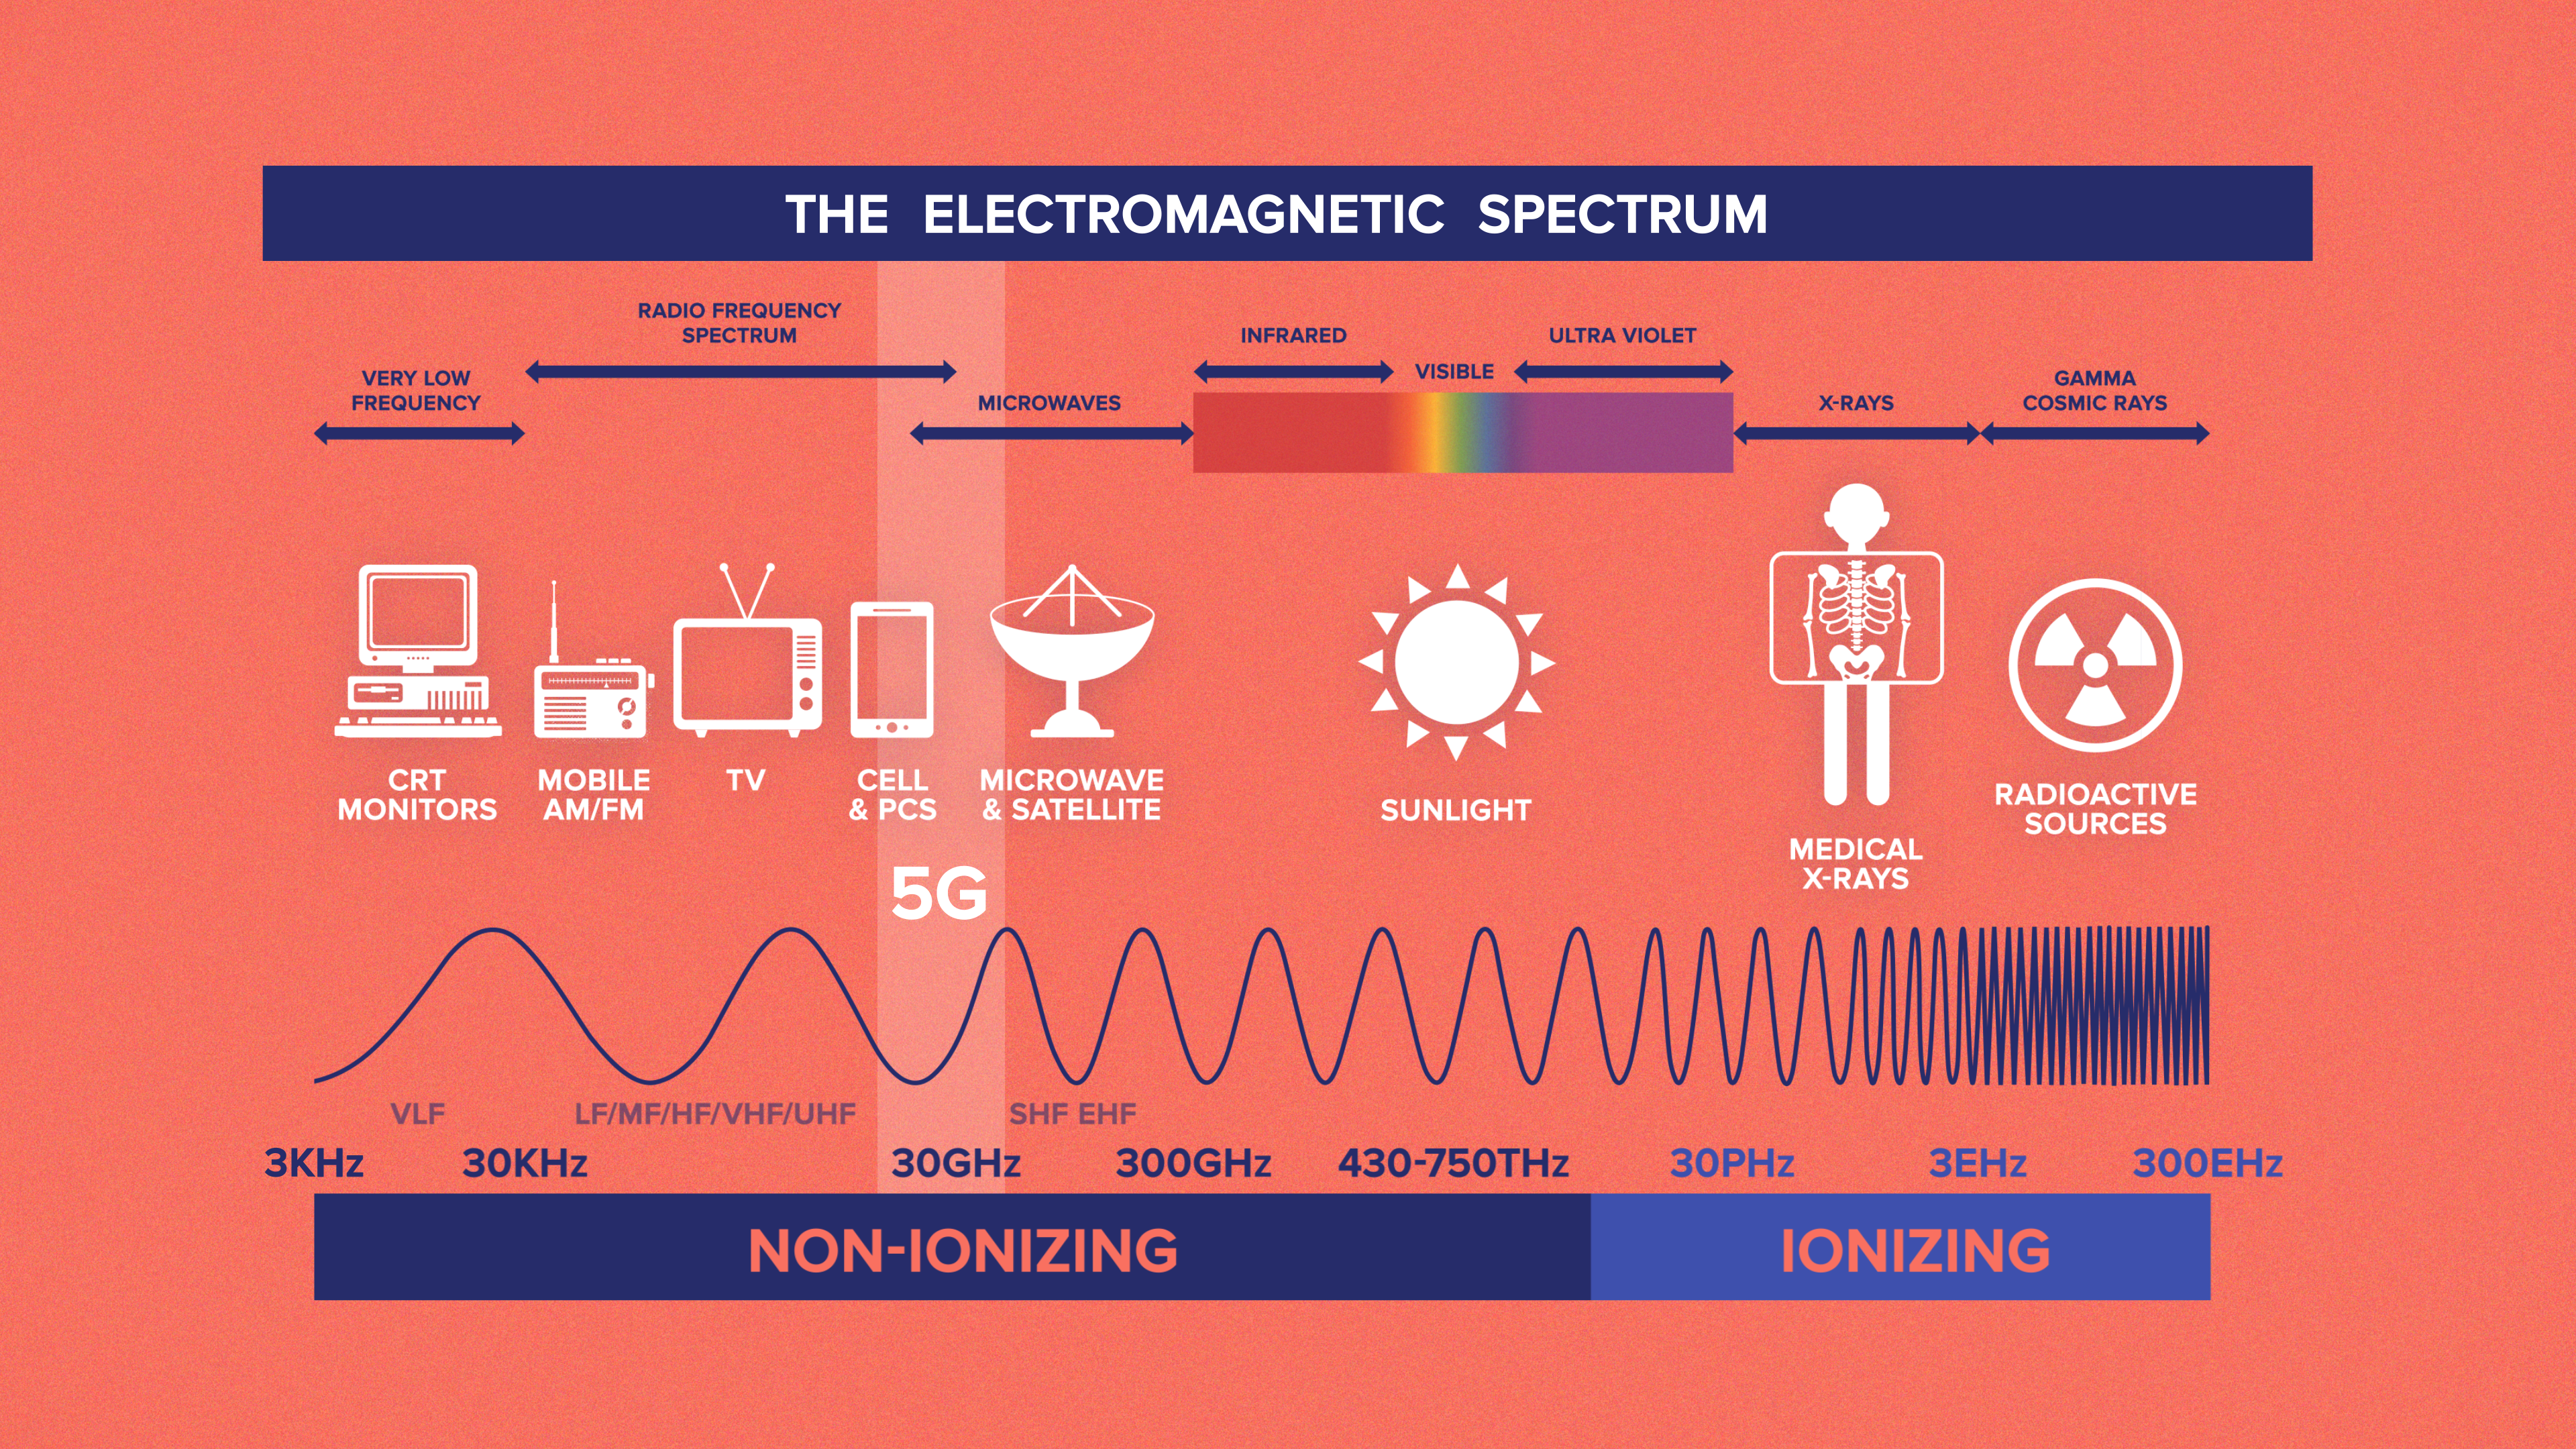 Chart showing the electromagnetic spectrum